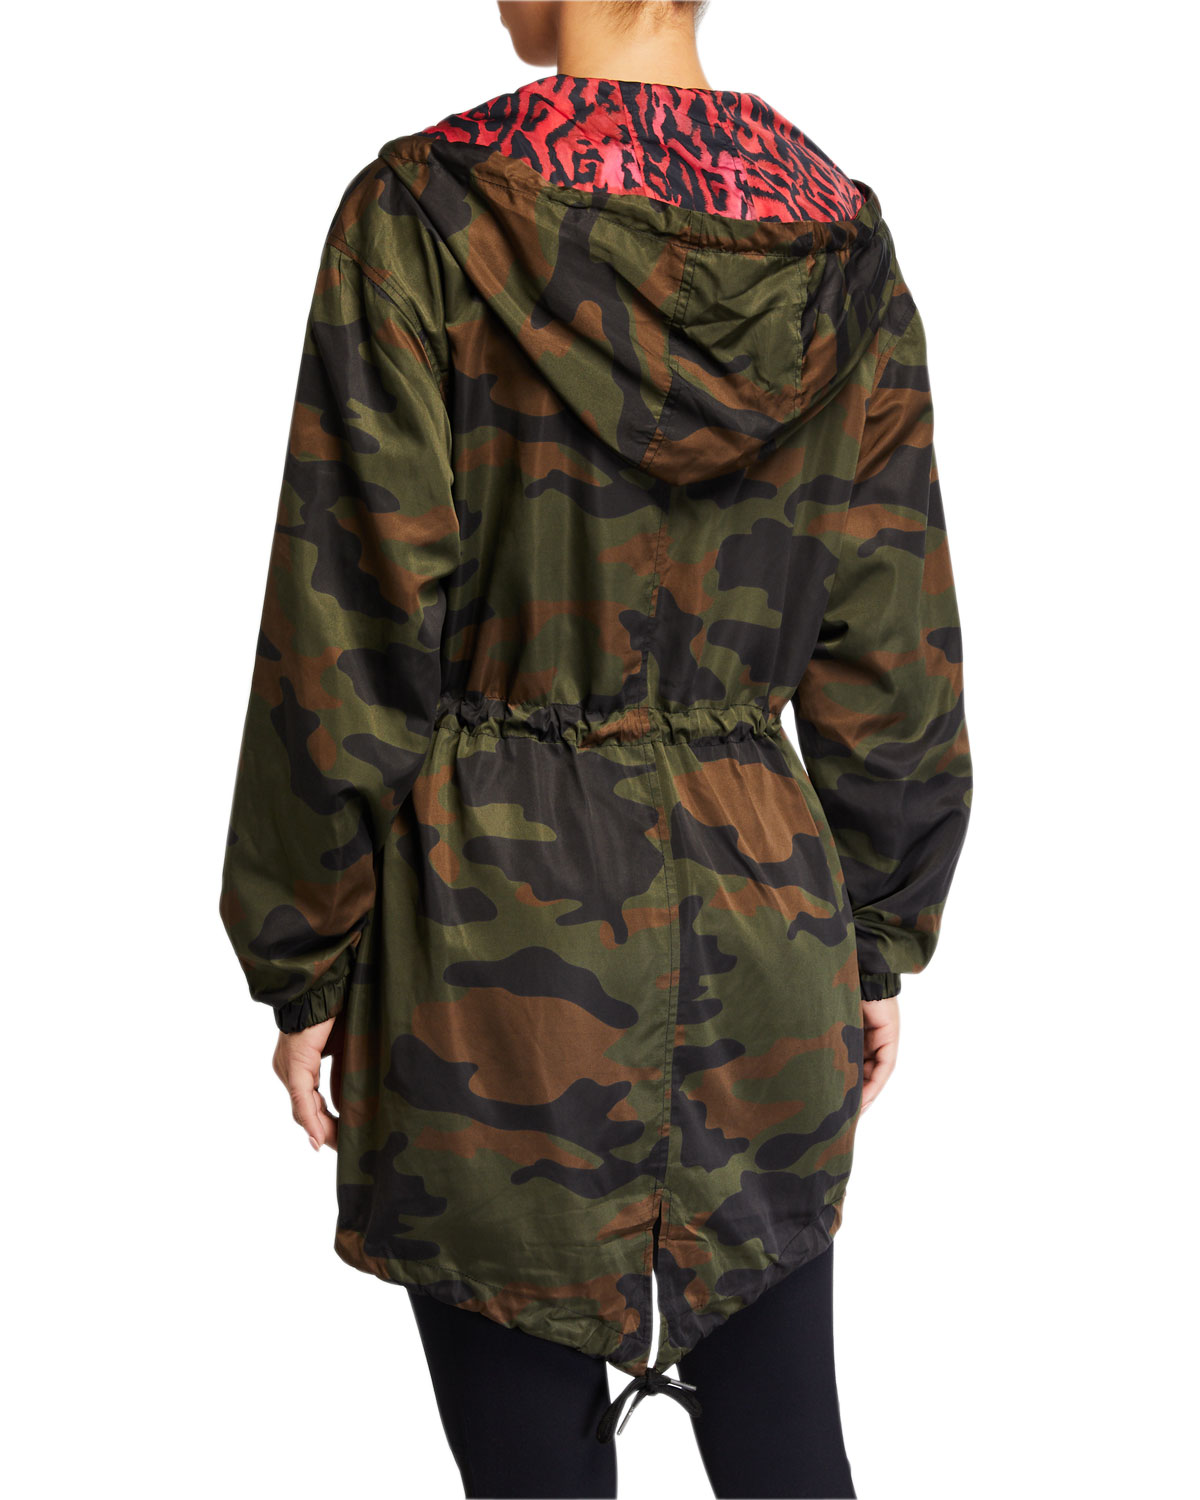 Reversible Camo Print Hooded Parka Jacket by Pam & Gela